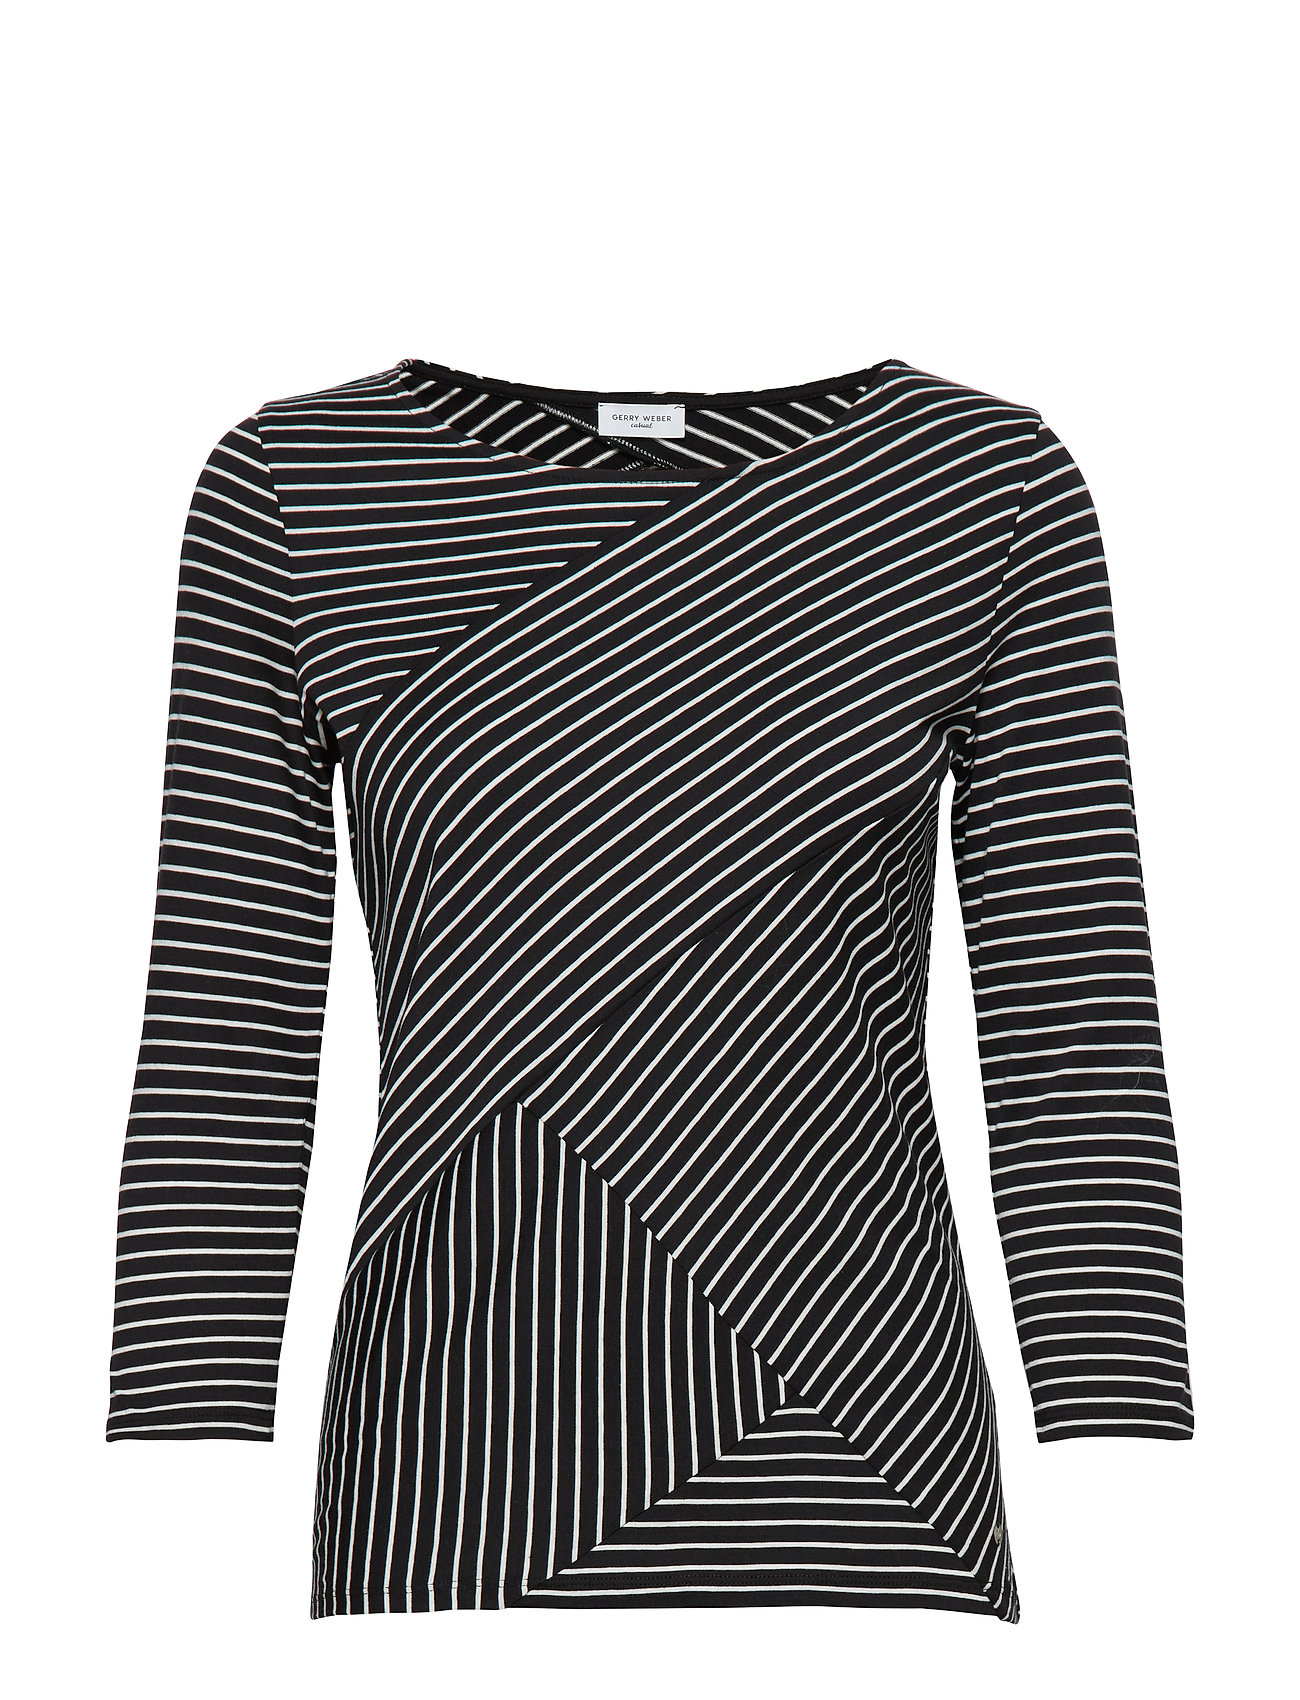 Gerry Weber Edition T-SHIRT 3/4-SLEEVE R - BLACK/ECRU/WHITE HOOPS